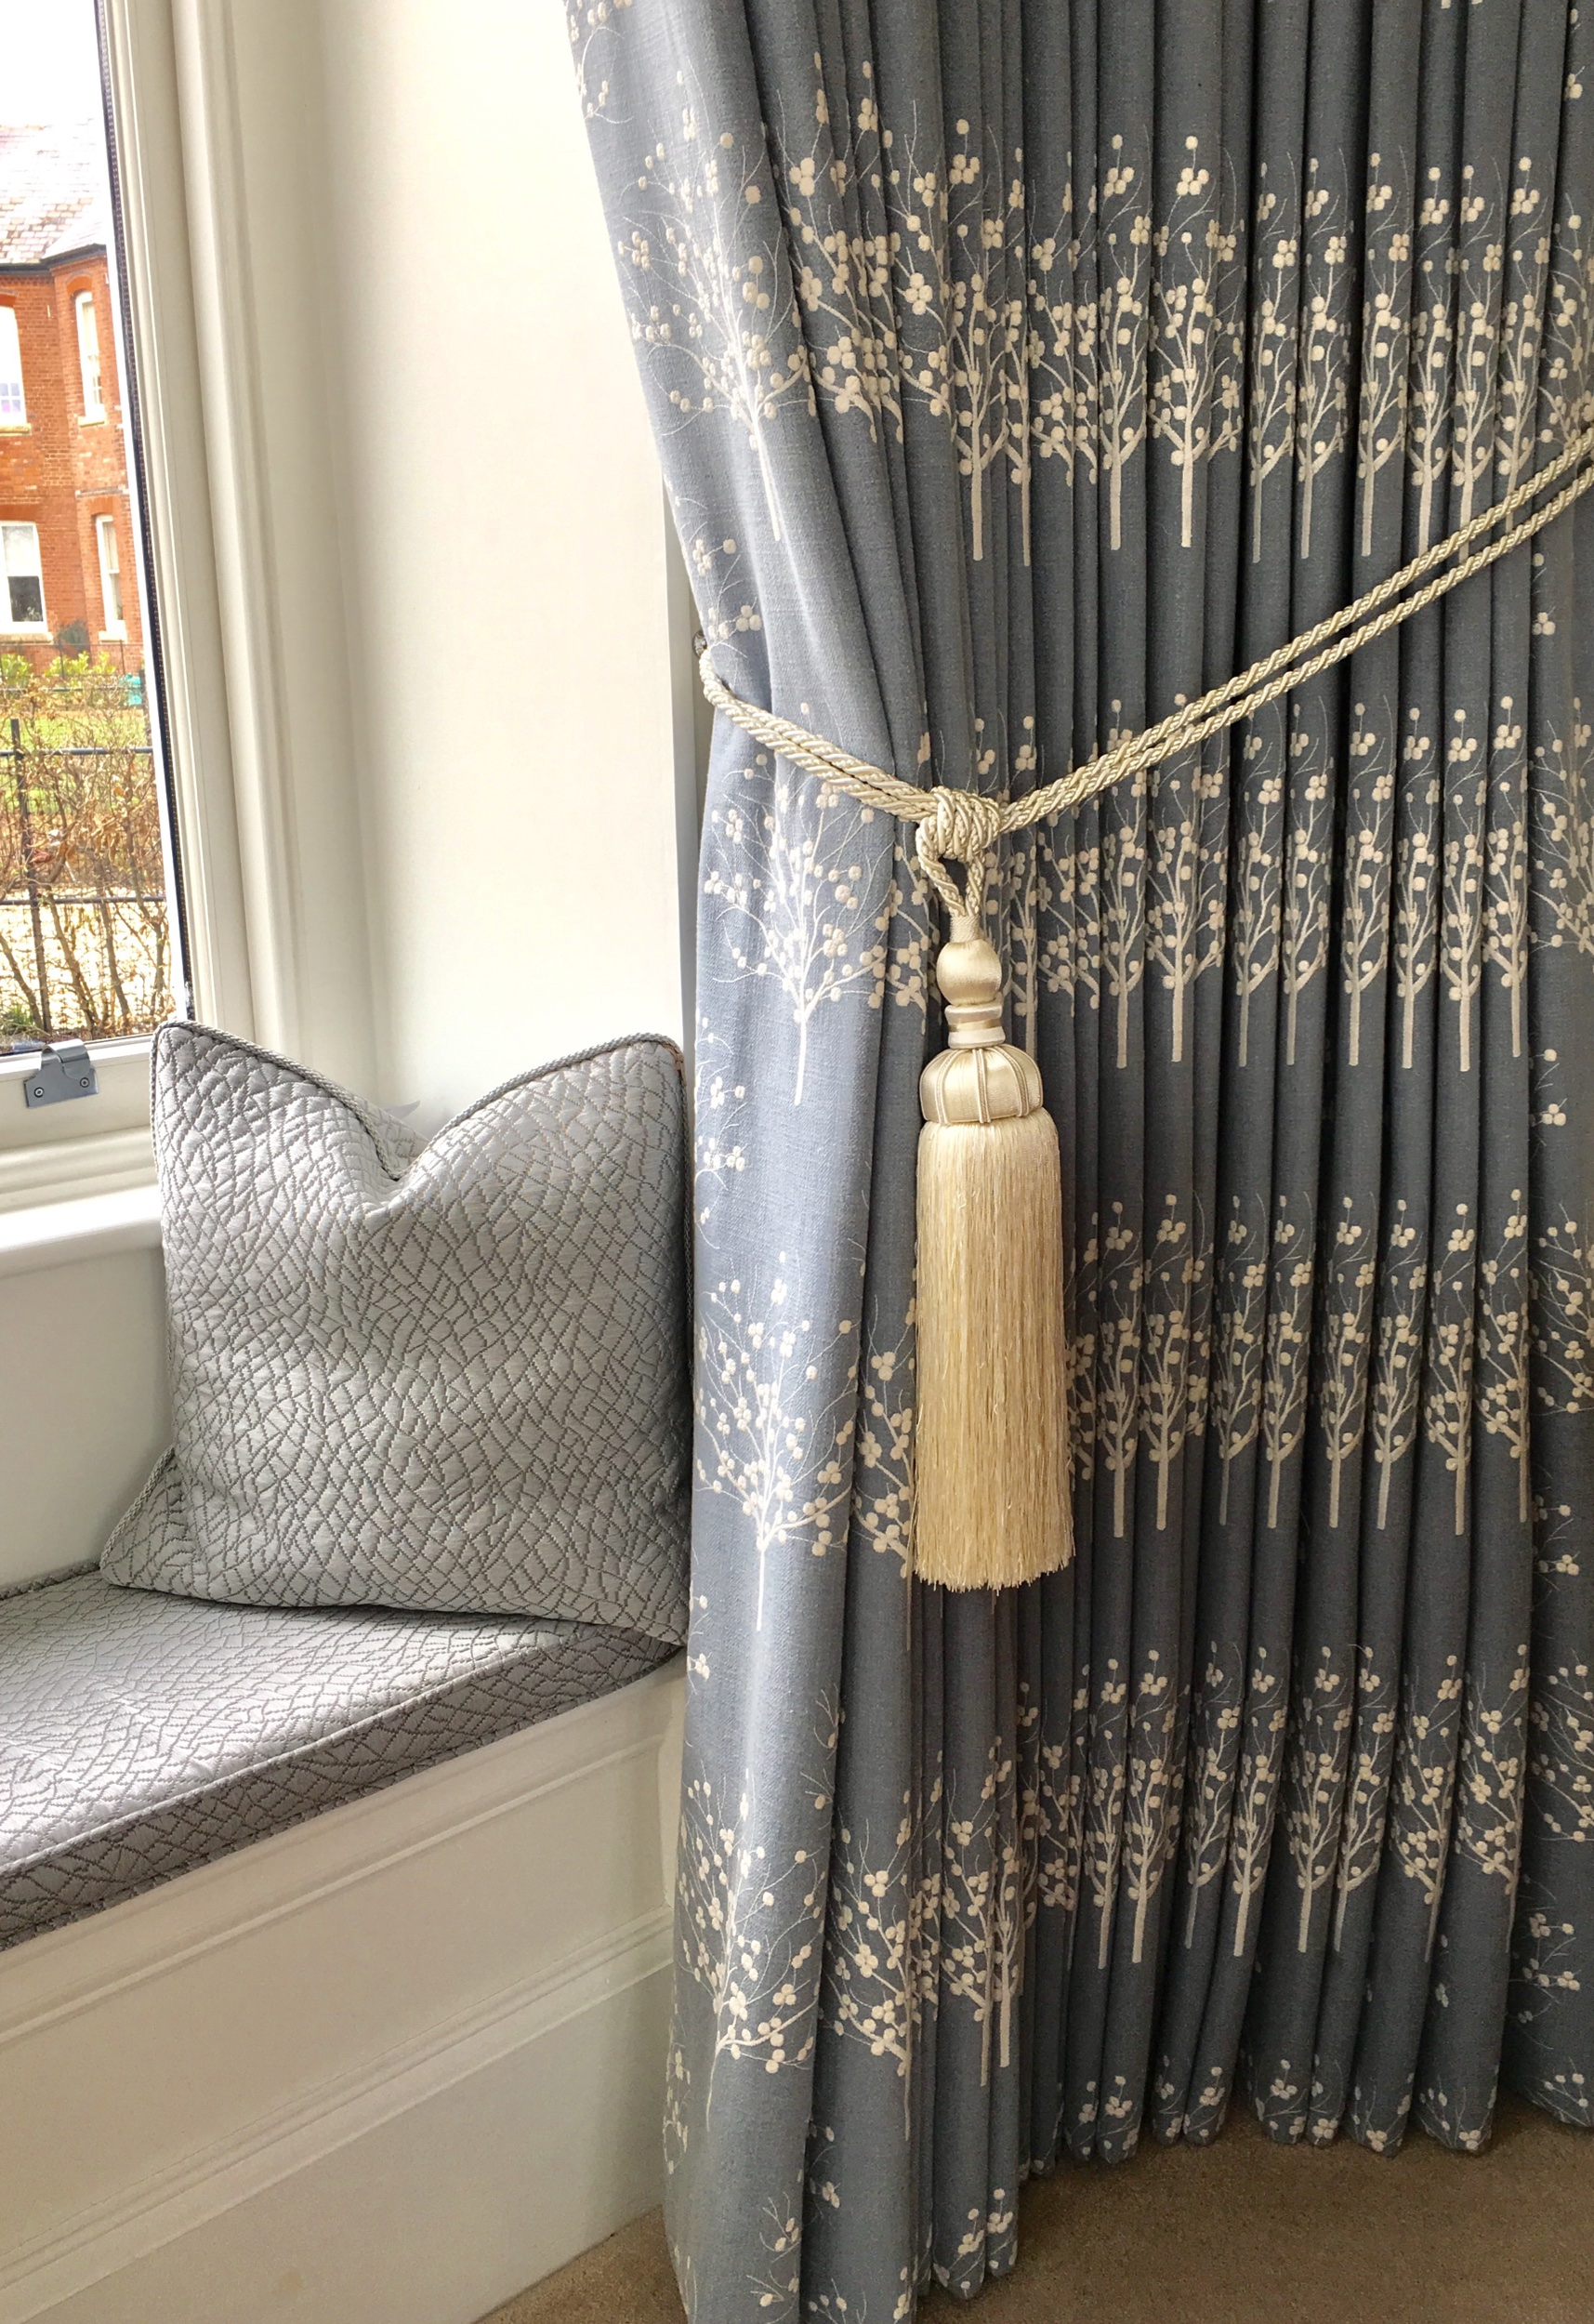 Beautifully pleated to pattern cartridge headed curtains. The fabric is Clarke & Clarke - Bowood Chambray rap £48pm  Cushion and seat pad fabric is Robert Allen - Opal Creek Silver rap £67pm  Tiebacks are Marrakesh - Aubergine